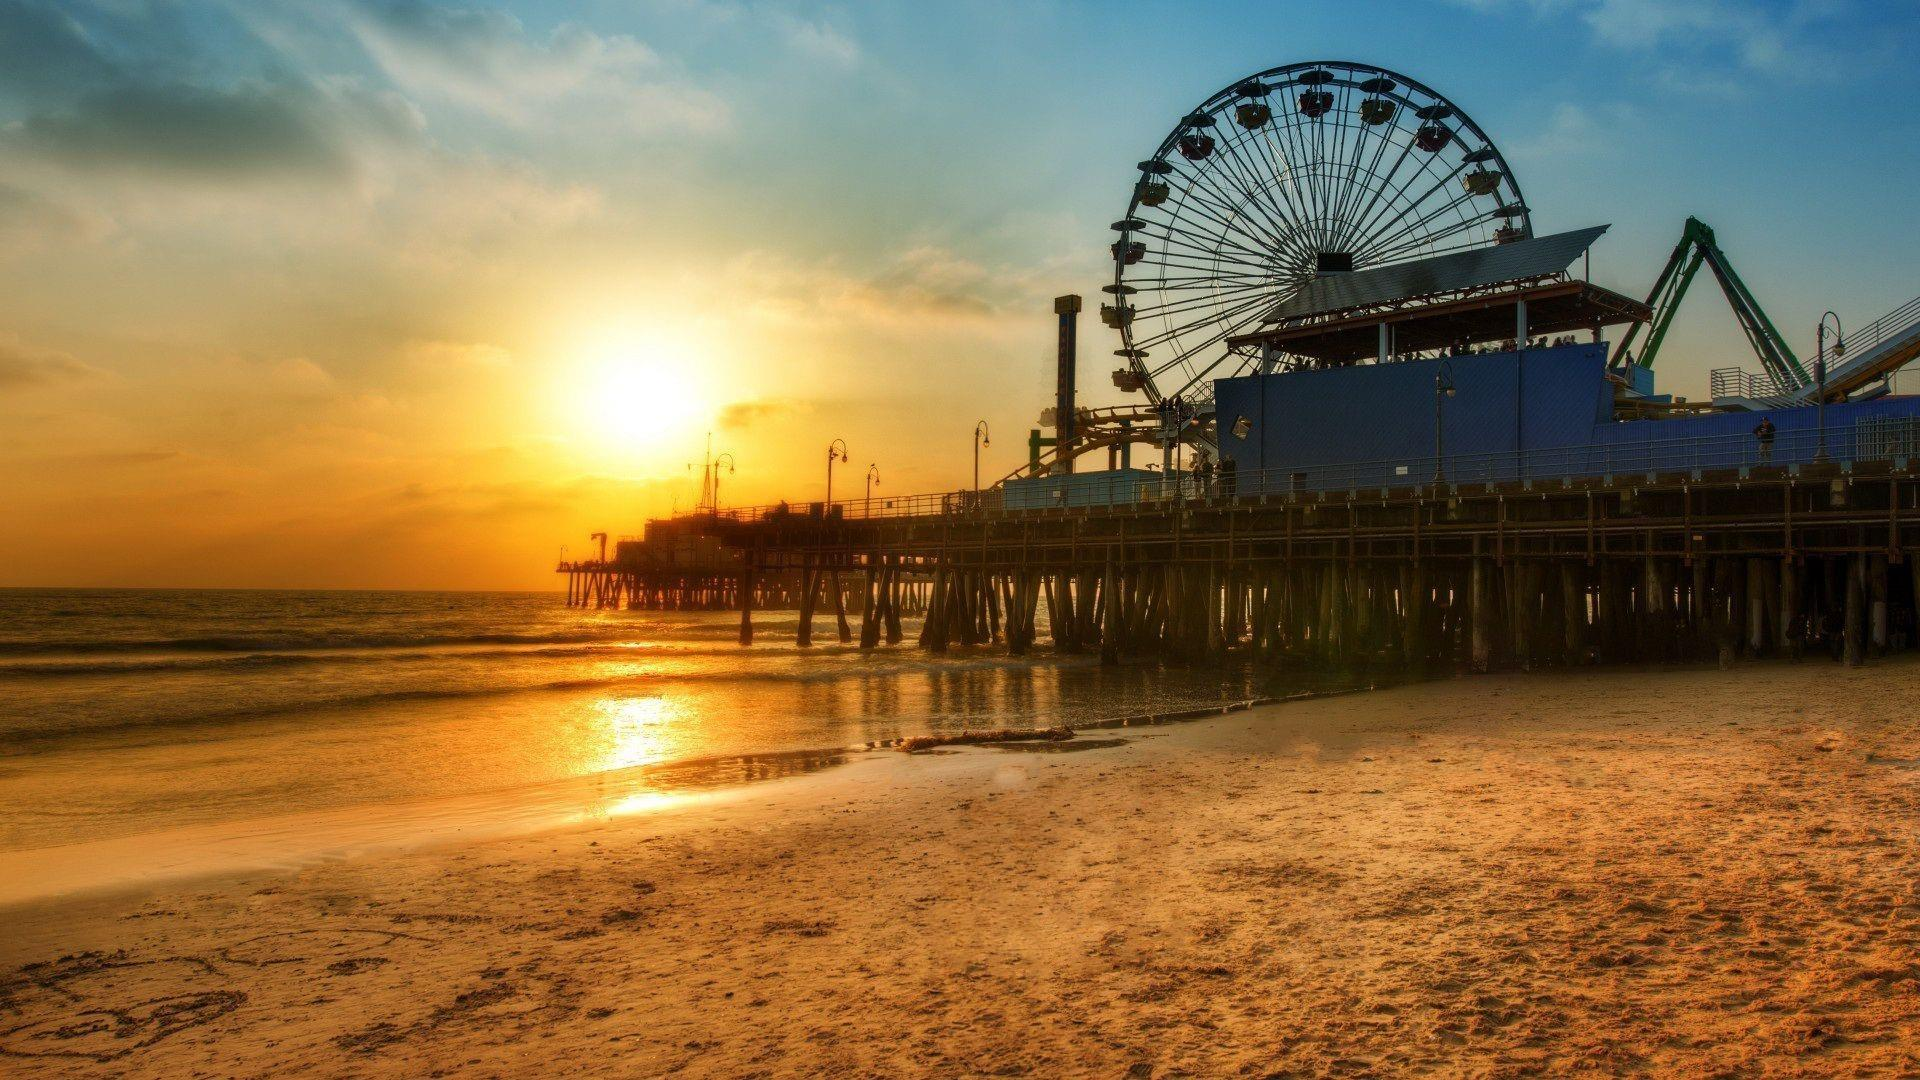 35 Los Angeles Beach Sunset Wallpapers   Download at WallpaperBro 1920x1080